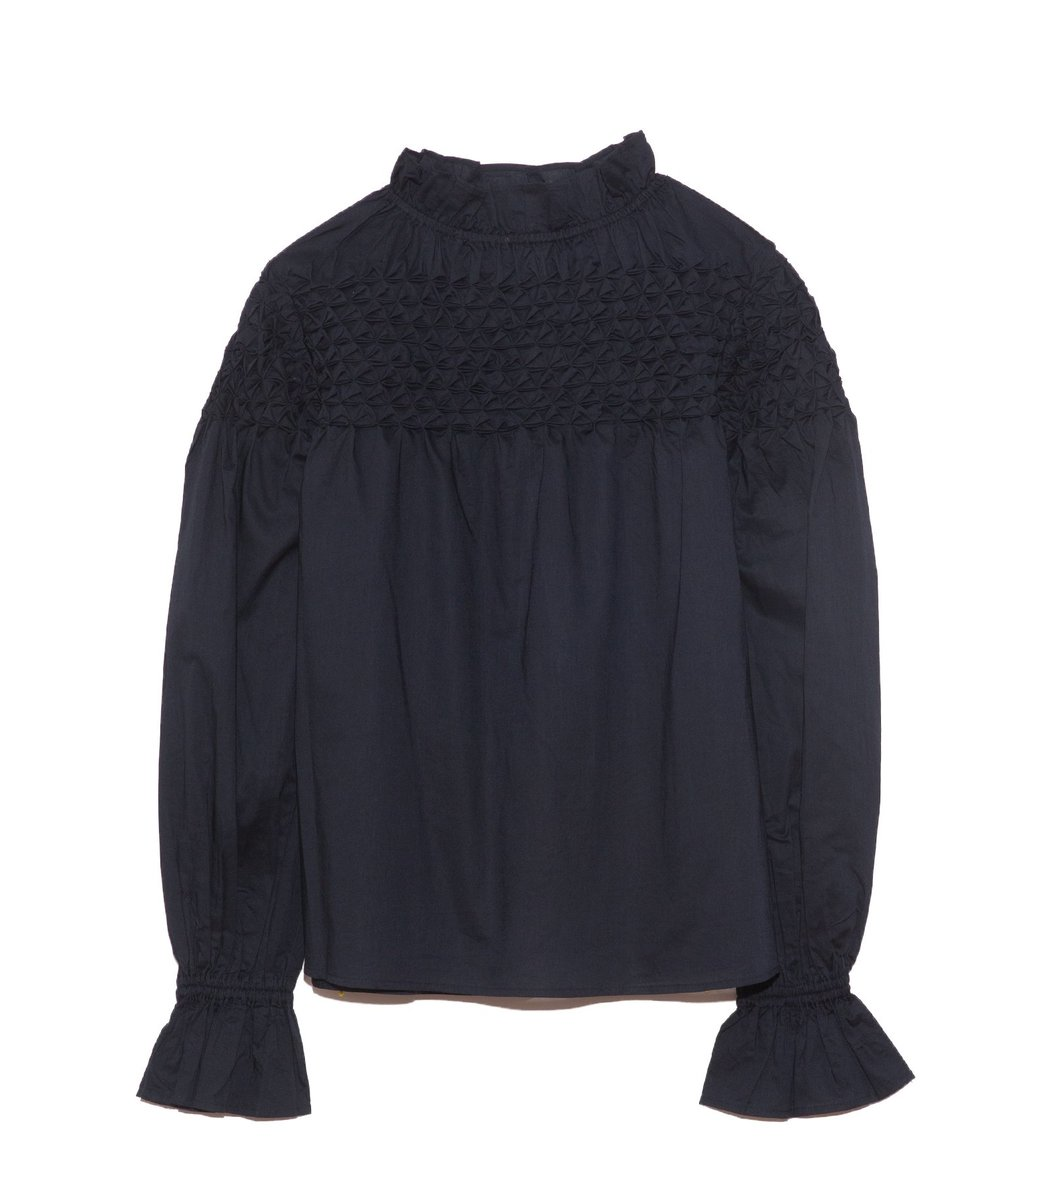 MERLETTE Majorelle Top in Navy